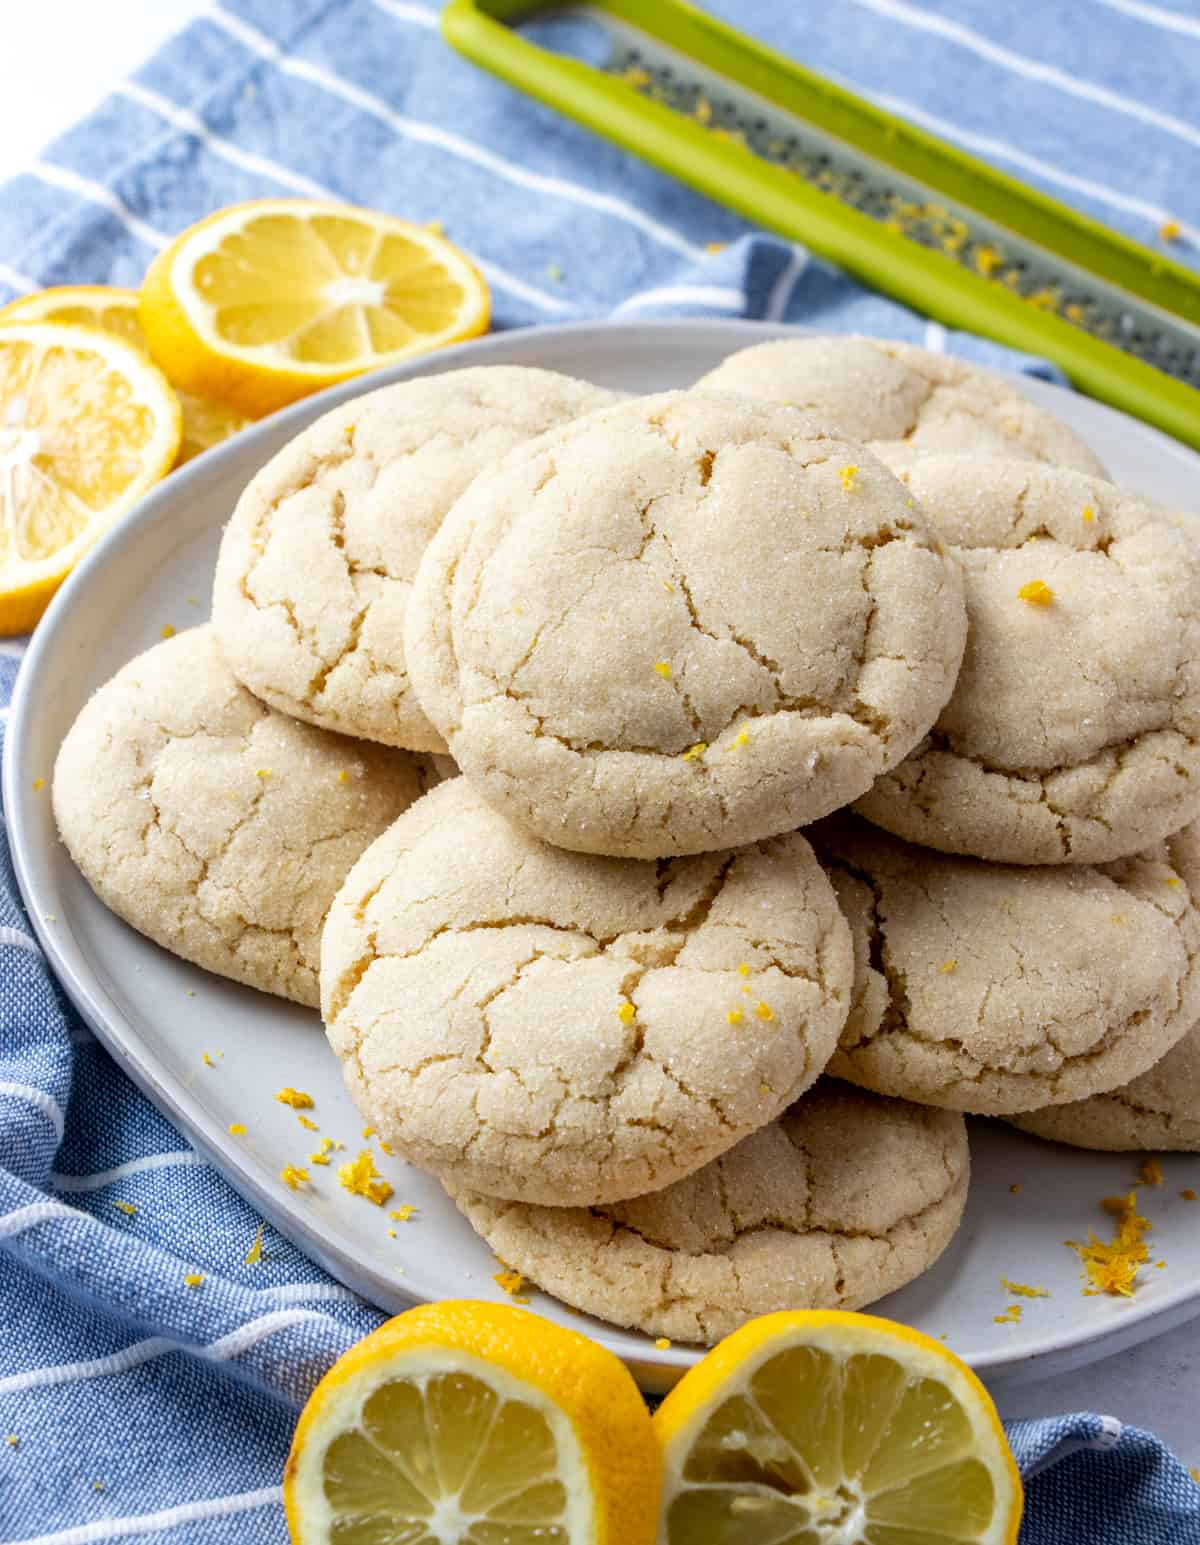 Cookies on plate stacked on top of one another garnished with lemons